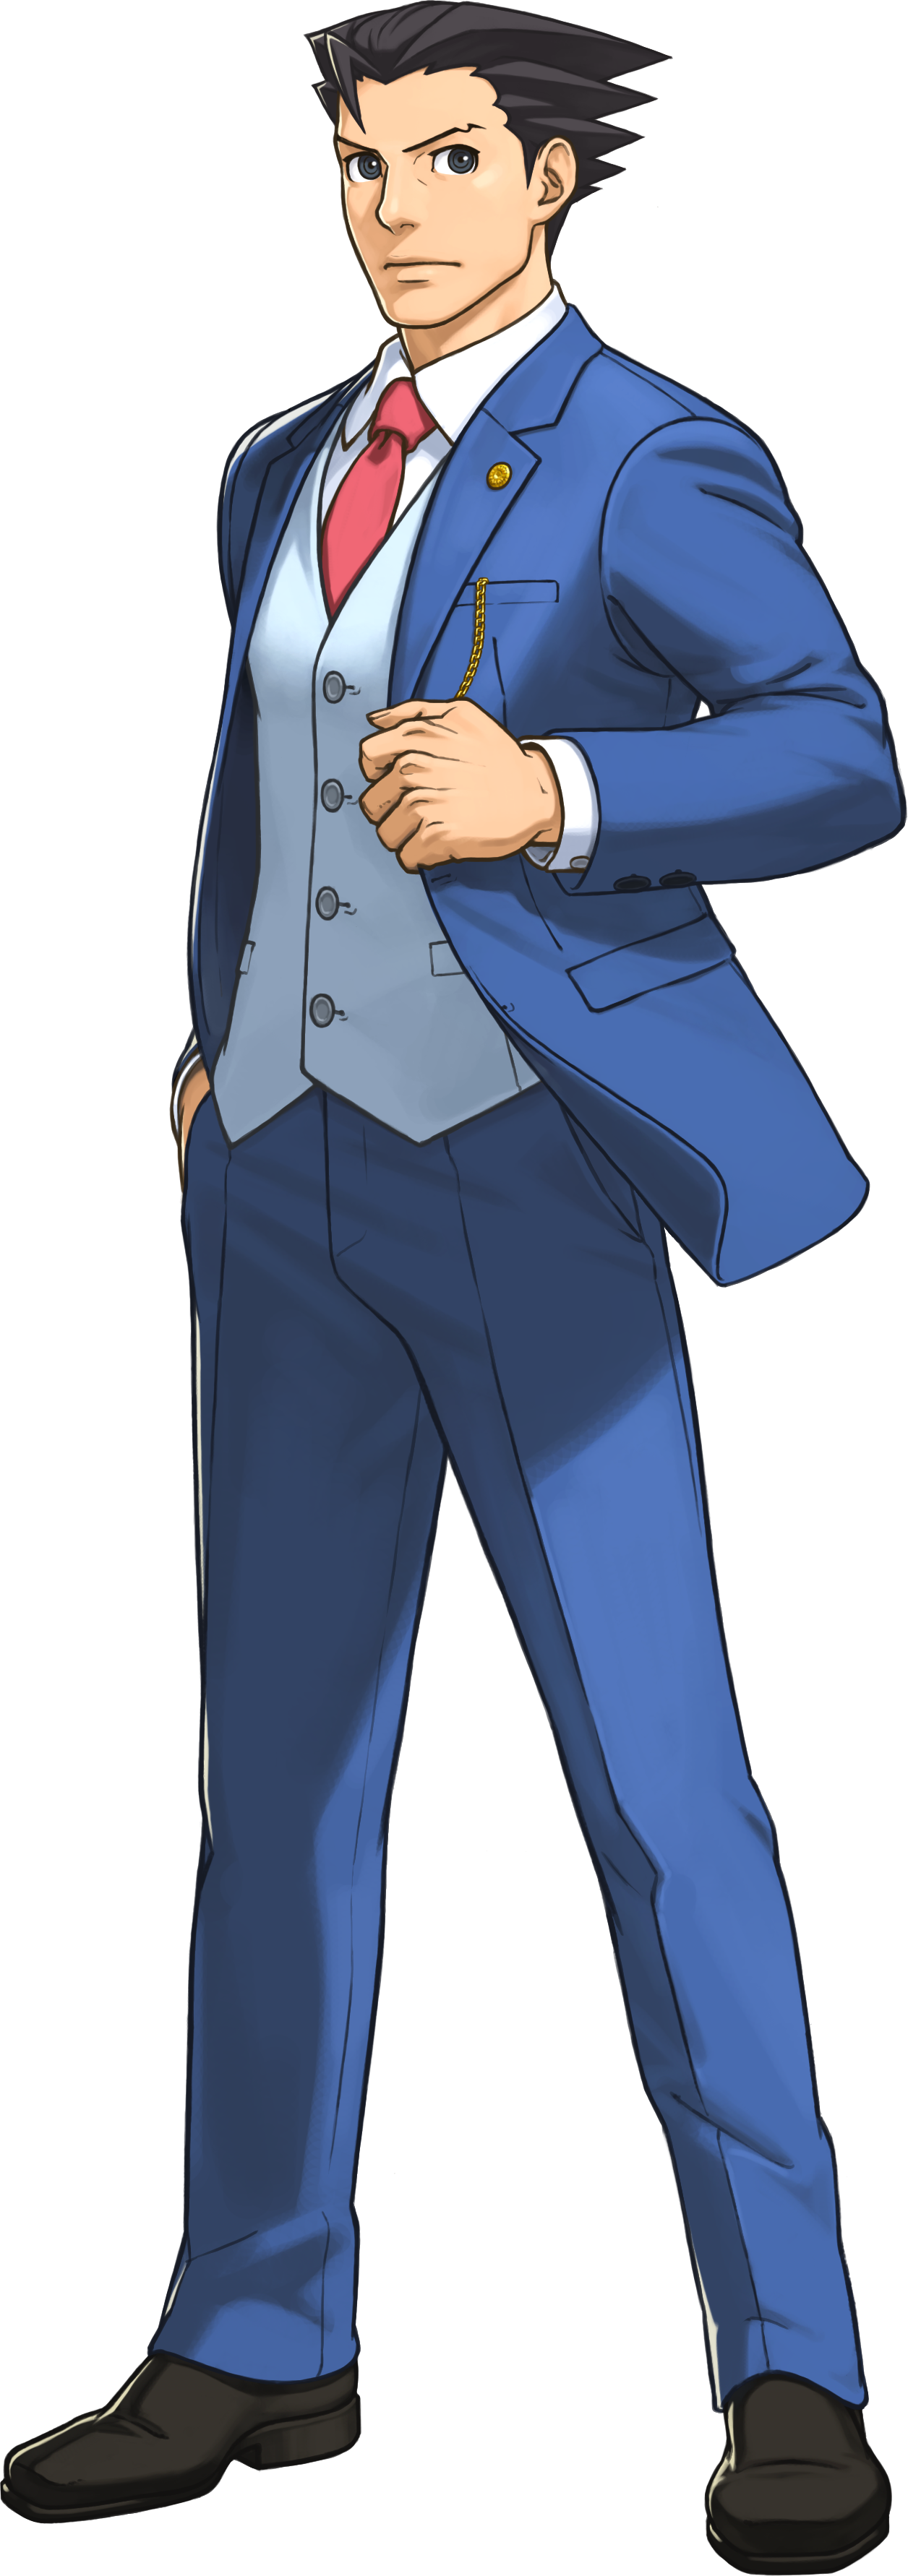 Ace Attorney Transparent PNG Image